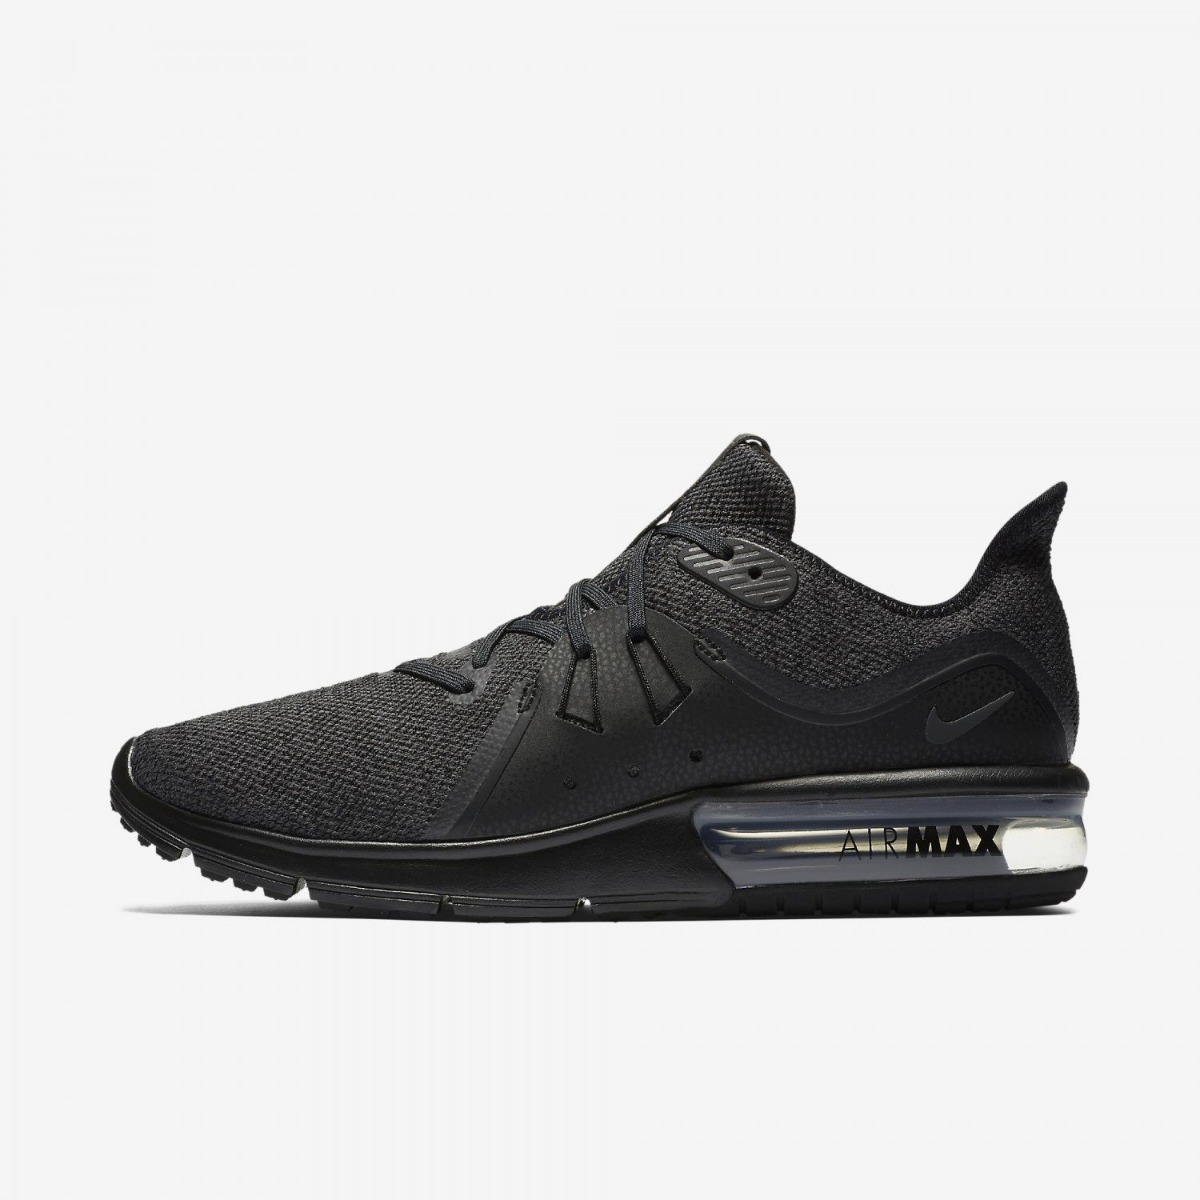 84cd203f8 tênis nike air max sequent 3 black de corrida masculino orig. Carregando  zoom.